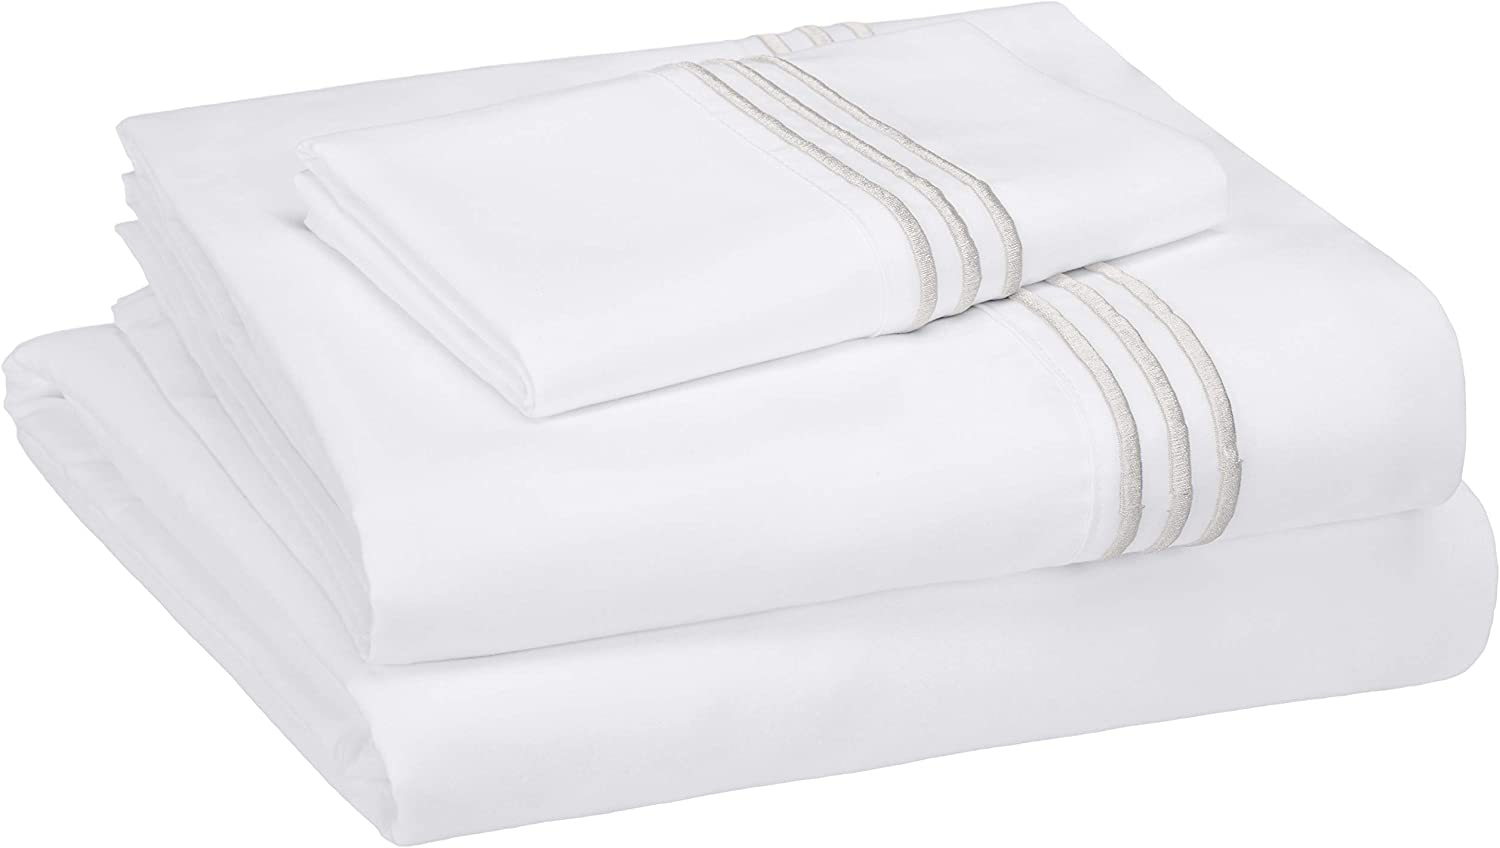 AmazonBasics Premium Embroidered Hotel Stitch Microfiber Sheet Set - Twin, White with Embroidered Light Grey